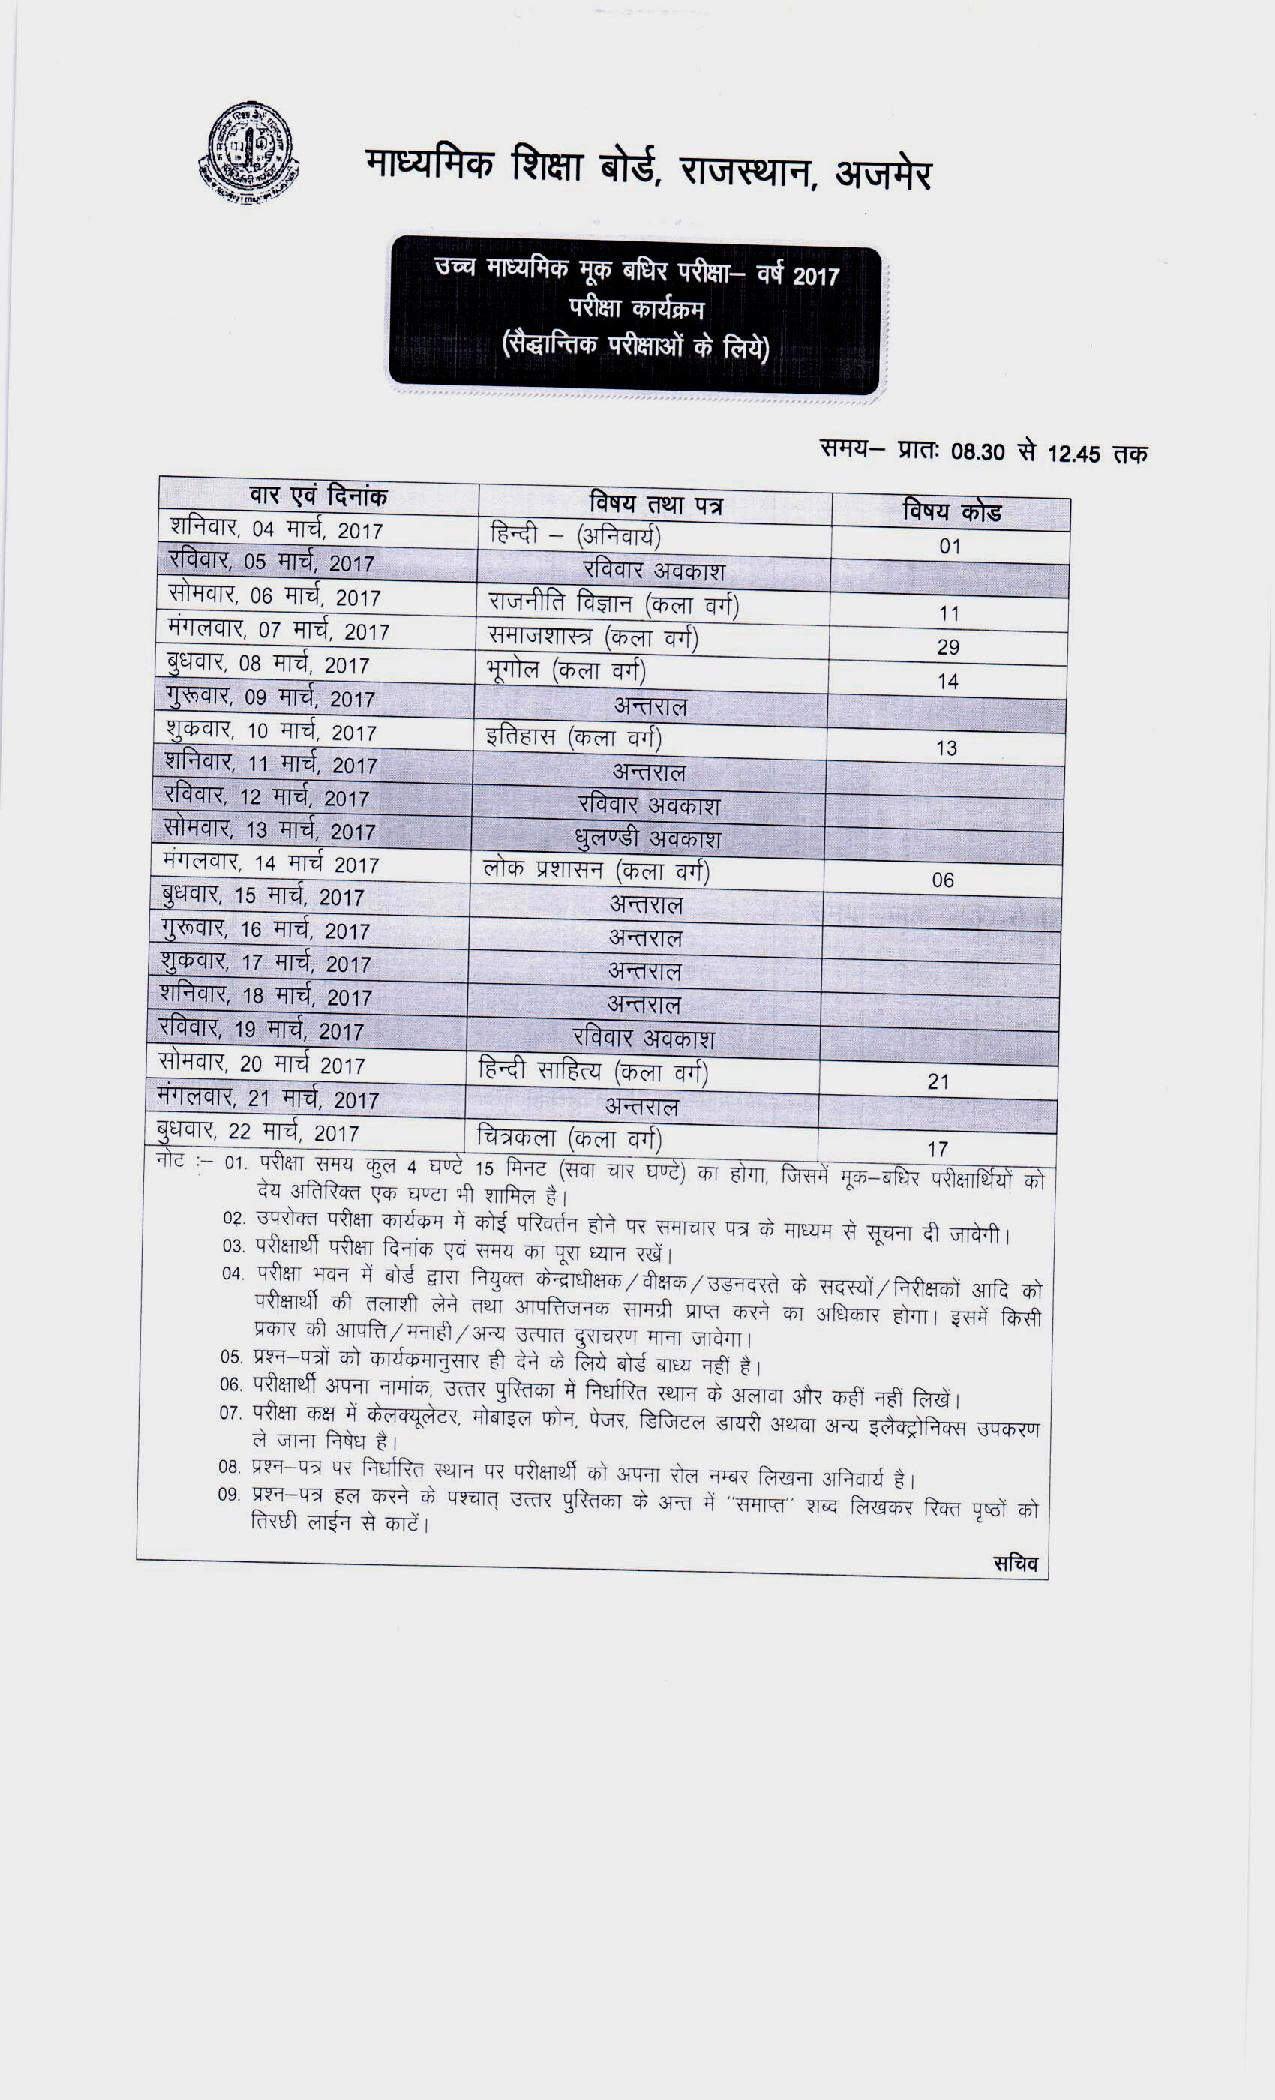 Rajasthan Board Inter 2nd Year Result 2